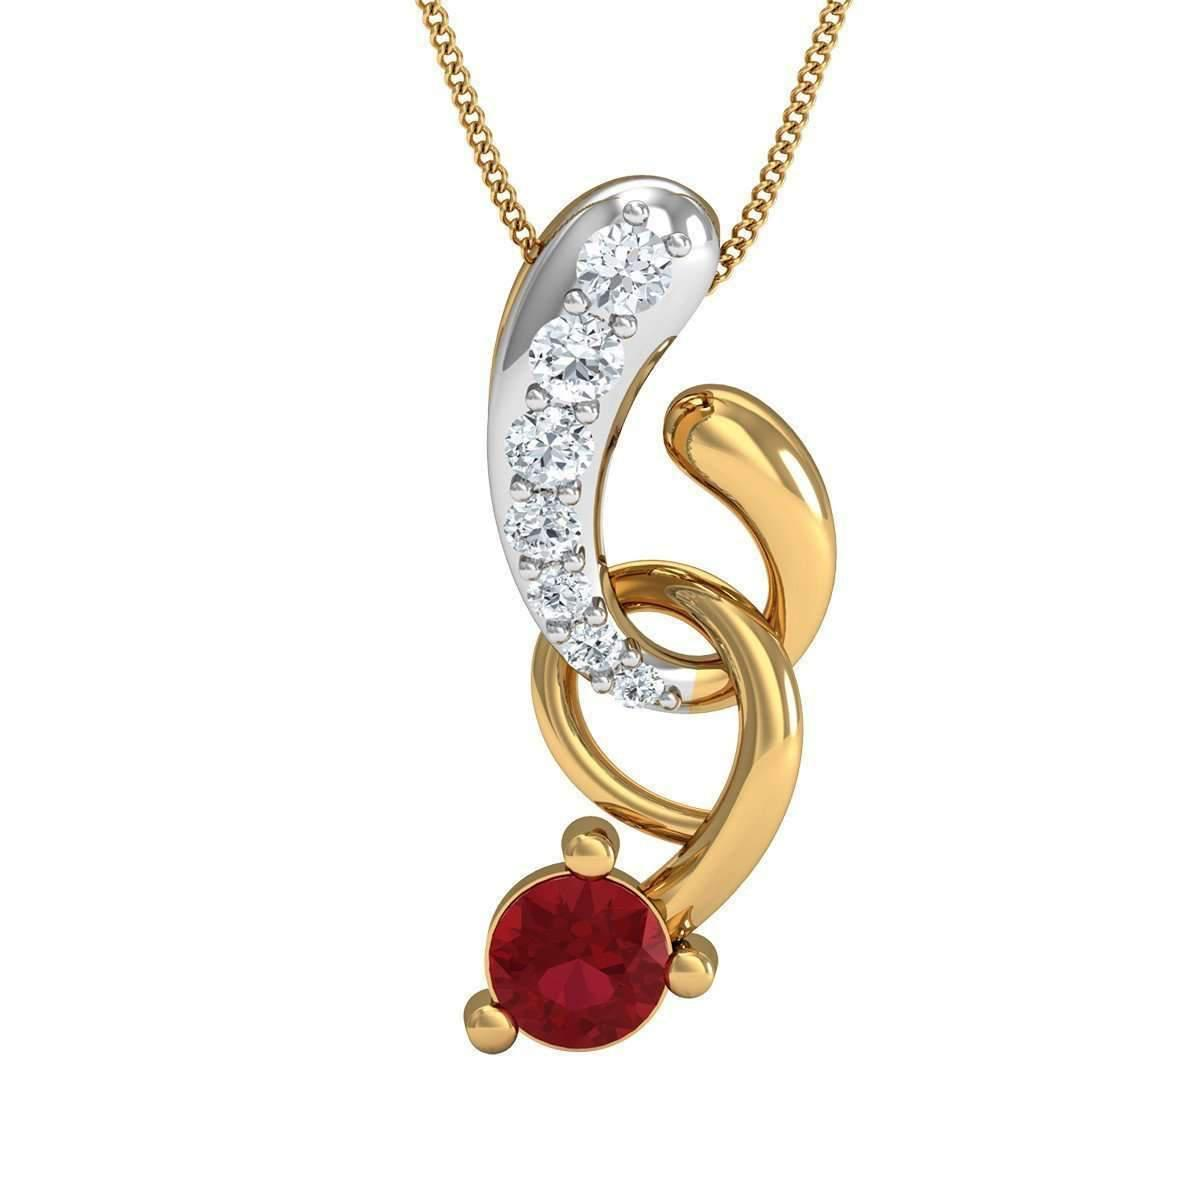 Diamoire Jewels Nature Inspired Pave Pendant in 10kt Yellow Gold, Diamonds and Red intense Ruby